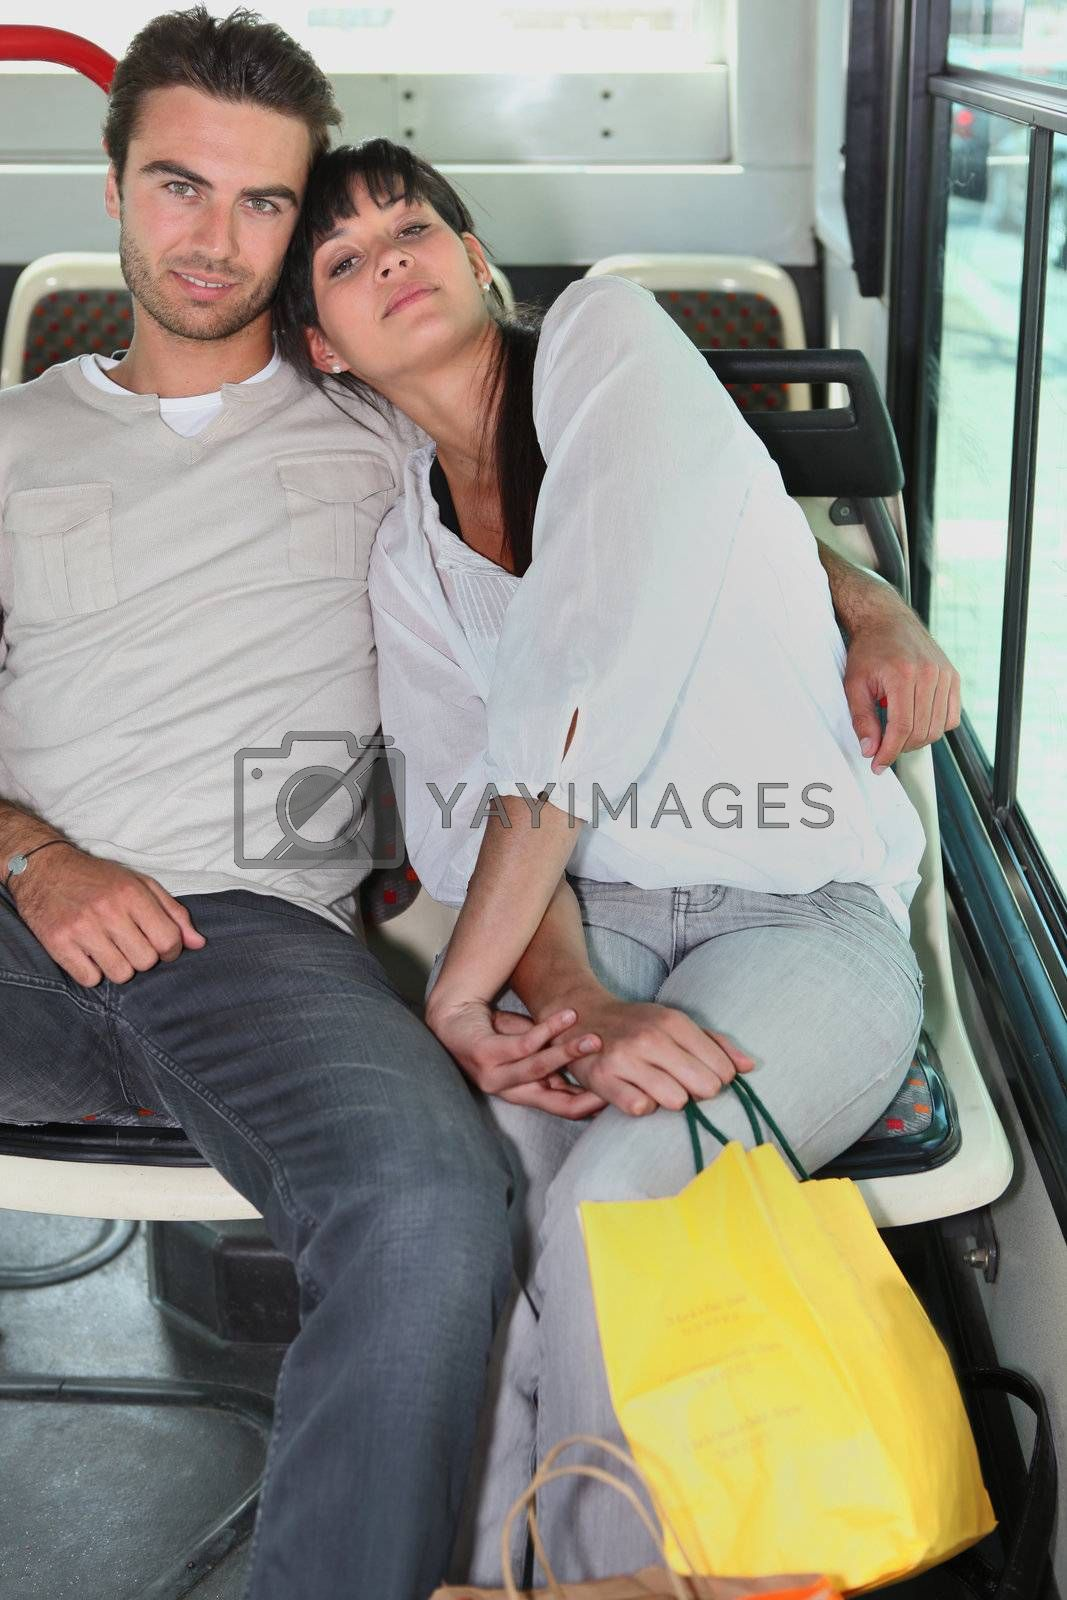 Couple embraced inside a bus